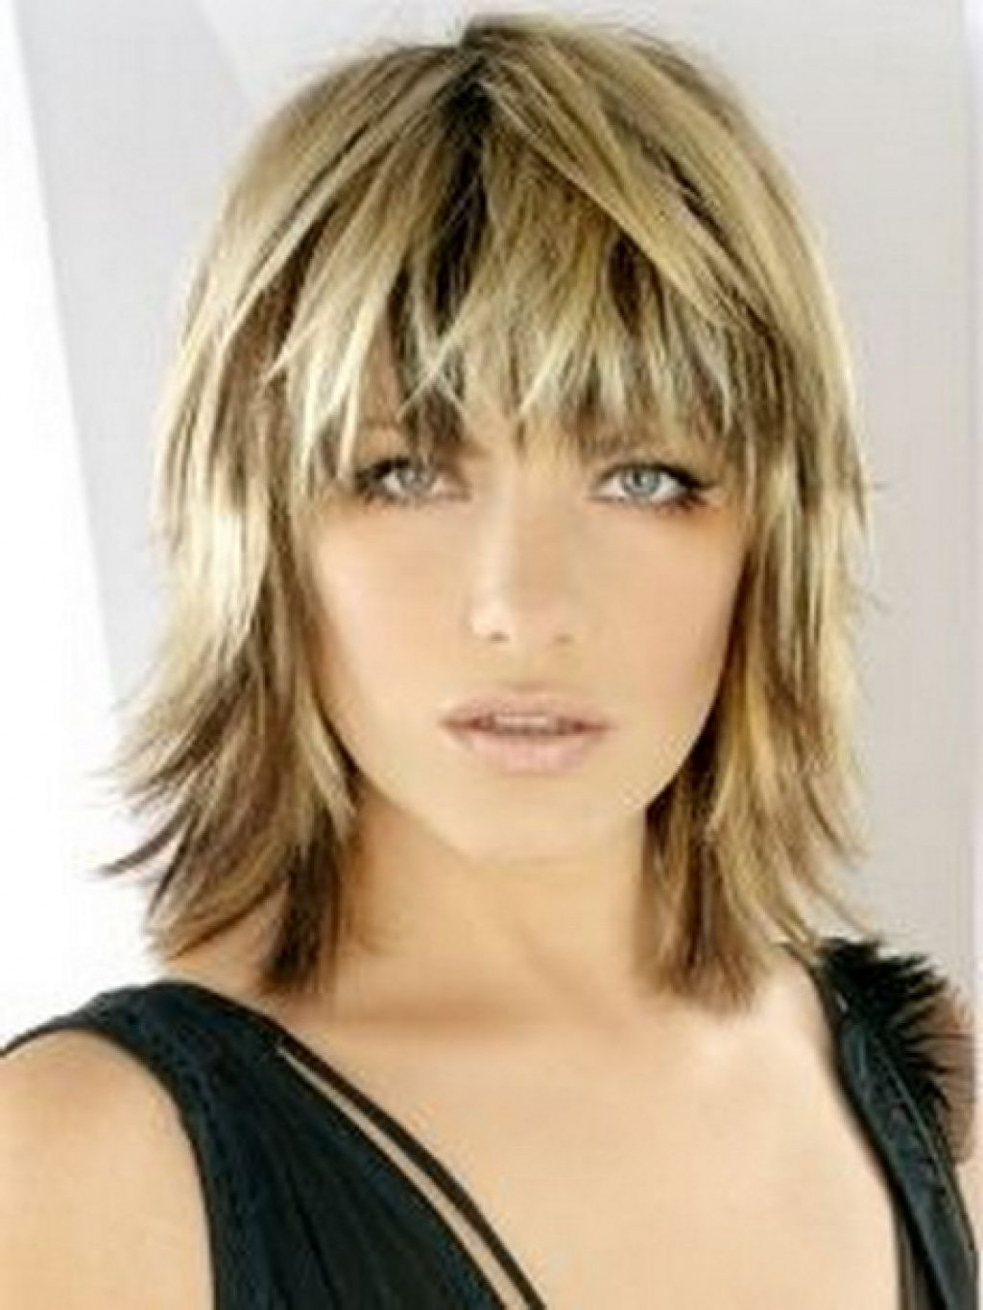 Medium Haircuts With Bangs And Layers Medium Length Layered Haircut For Most Recently Released Medium Haircuts With Bangs And Layers (View 9 of 20)